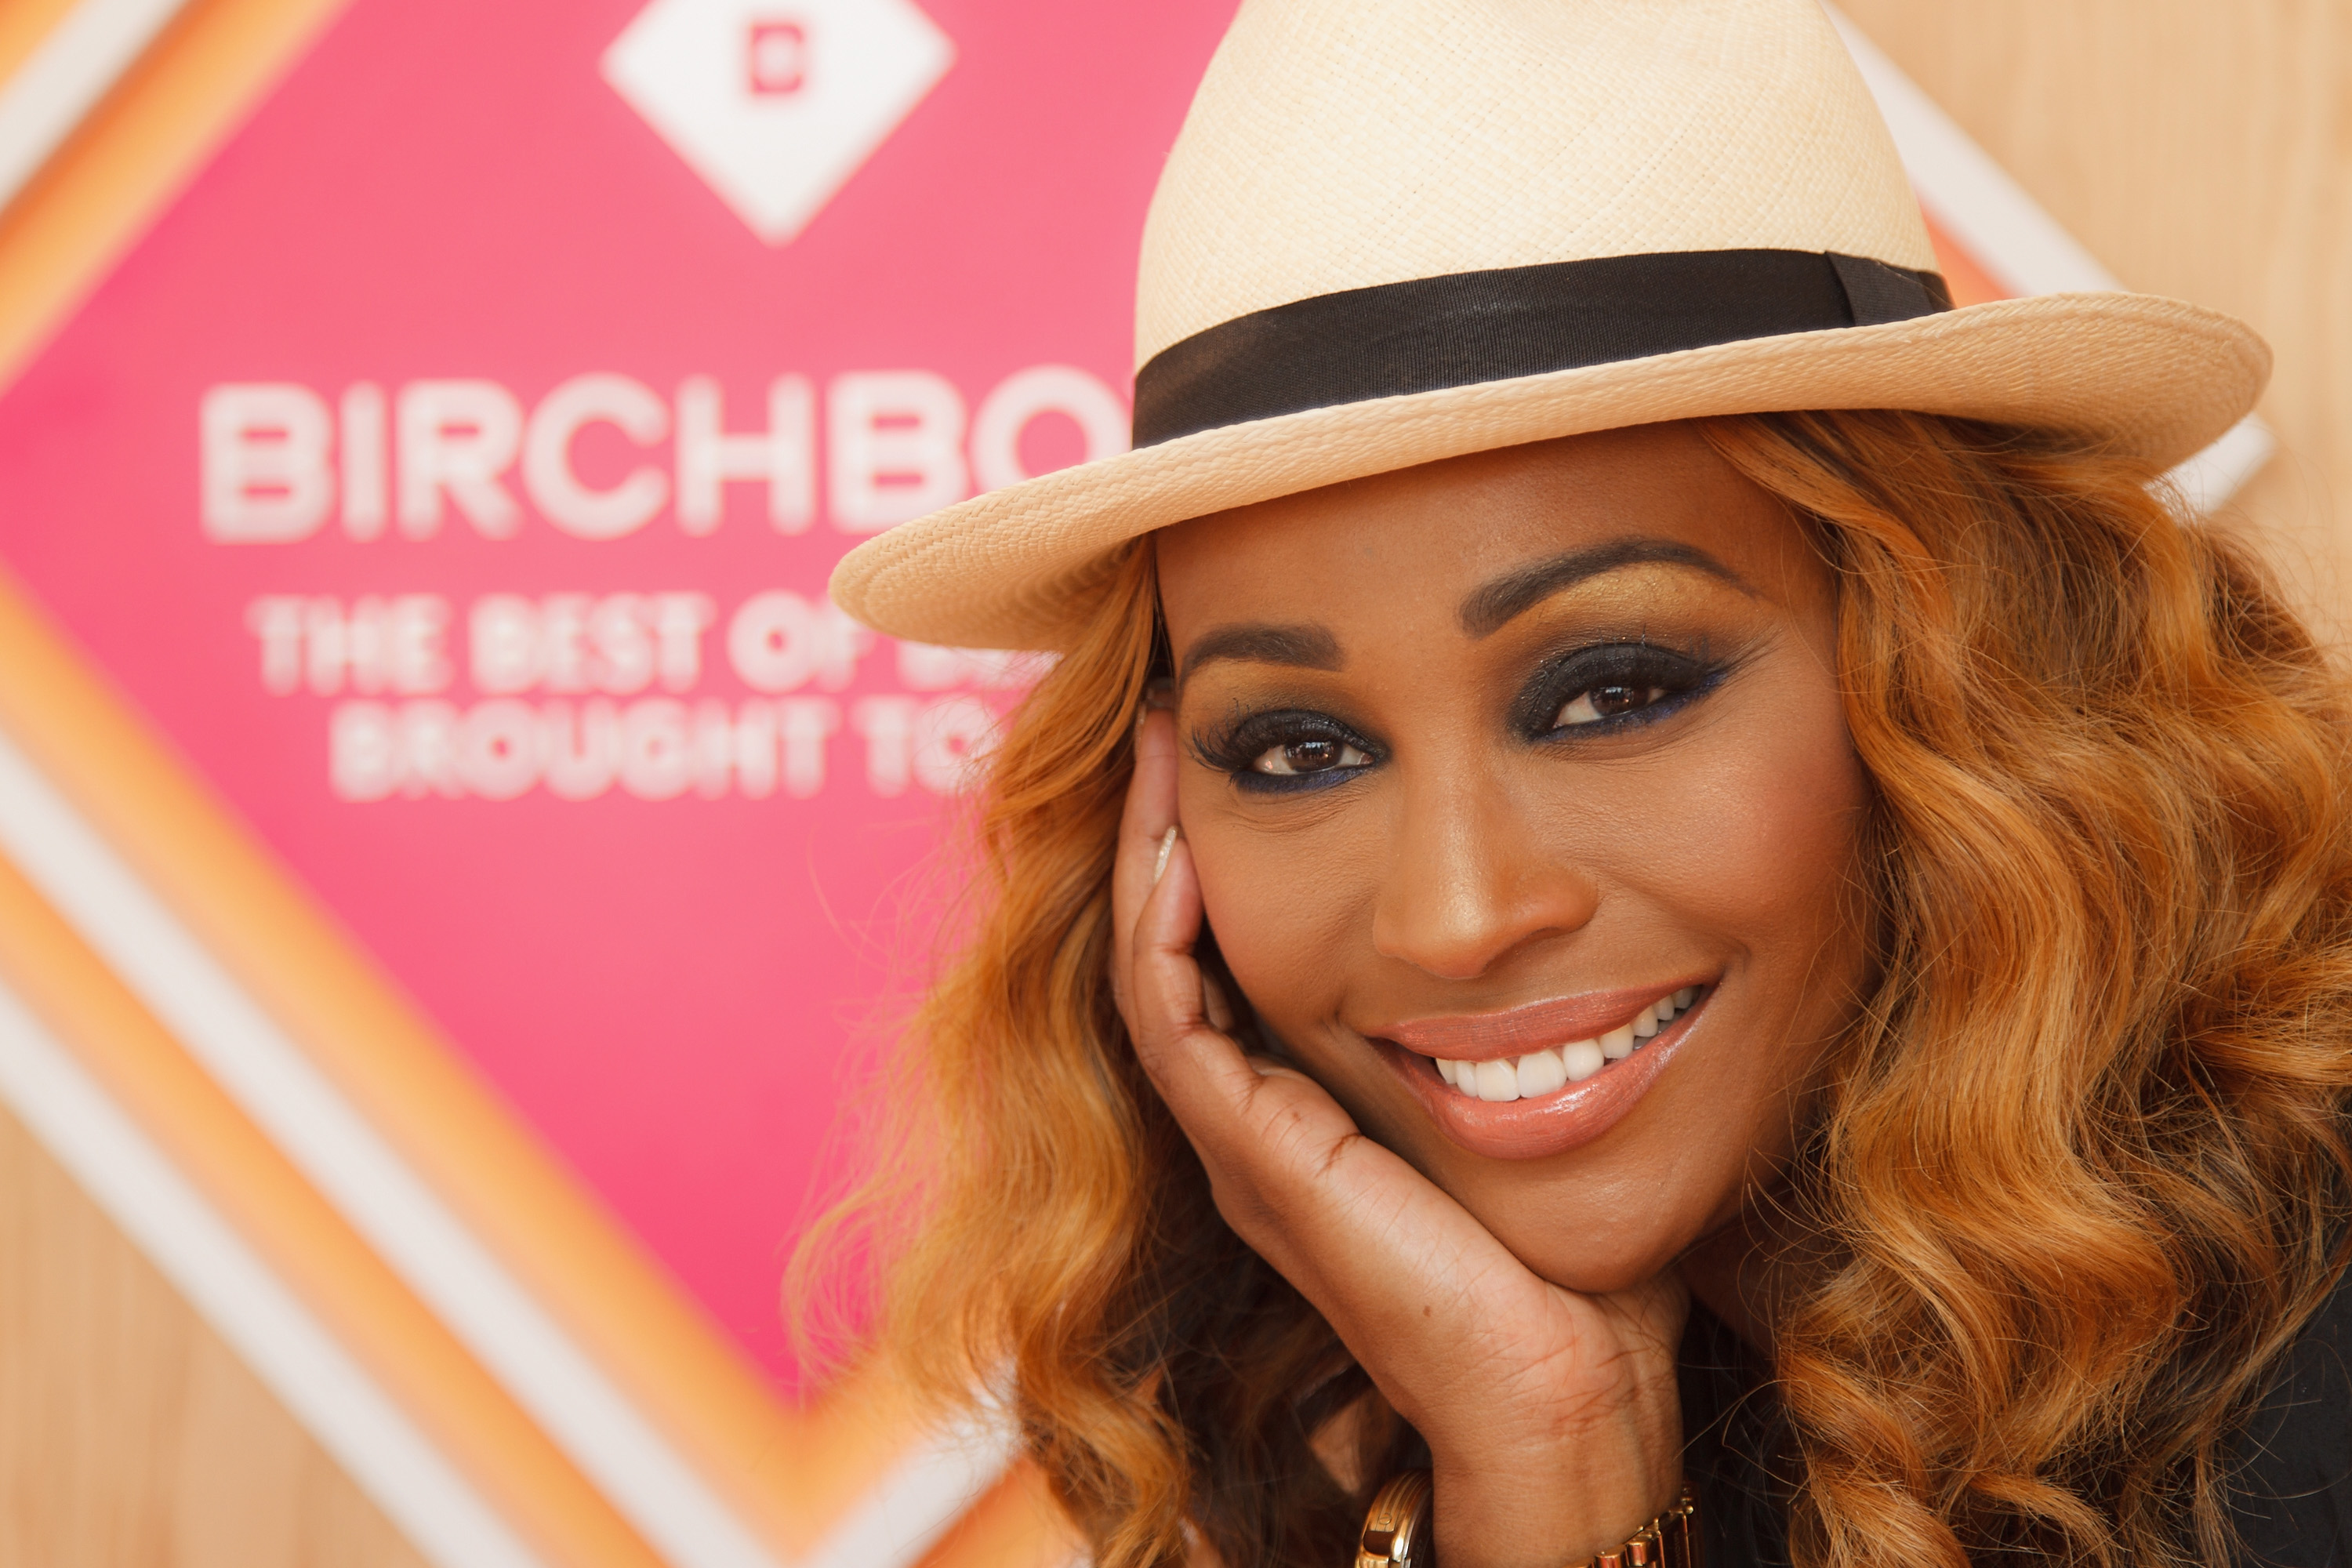 Steve Harvey Is Happy To Set Cynthia Bailey Up With Mike